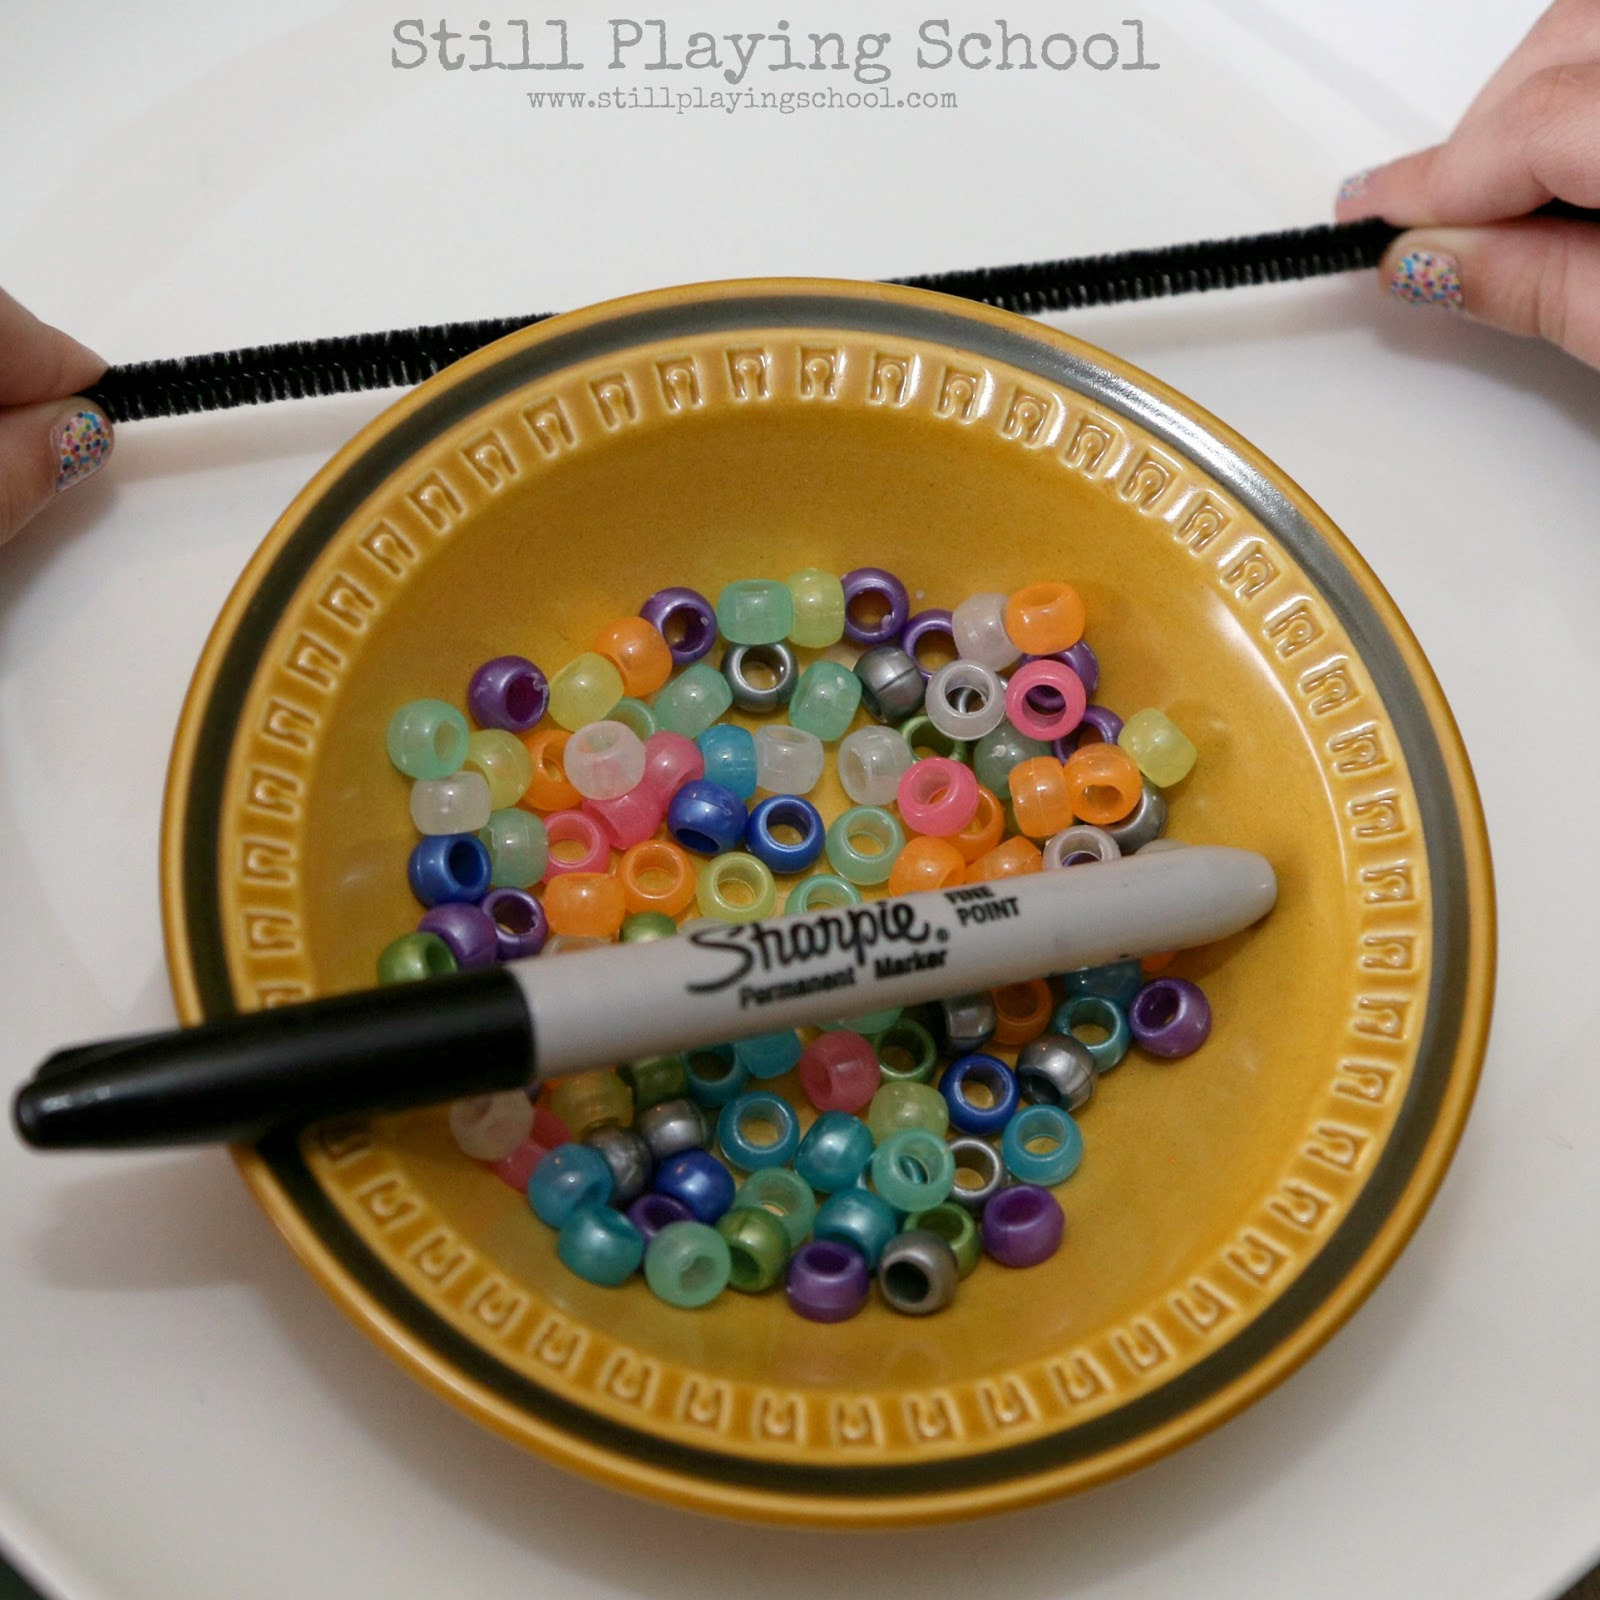 Solar System Bracelet Craft For Kids Still Playing School